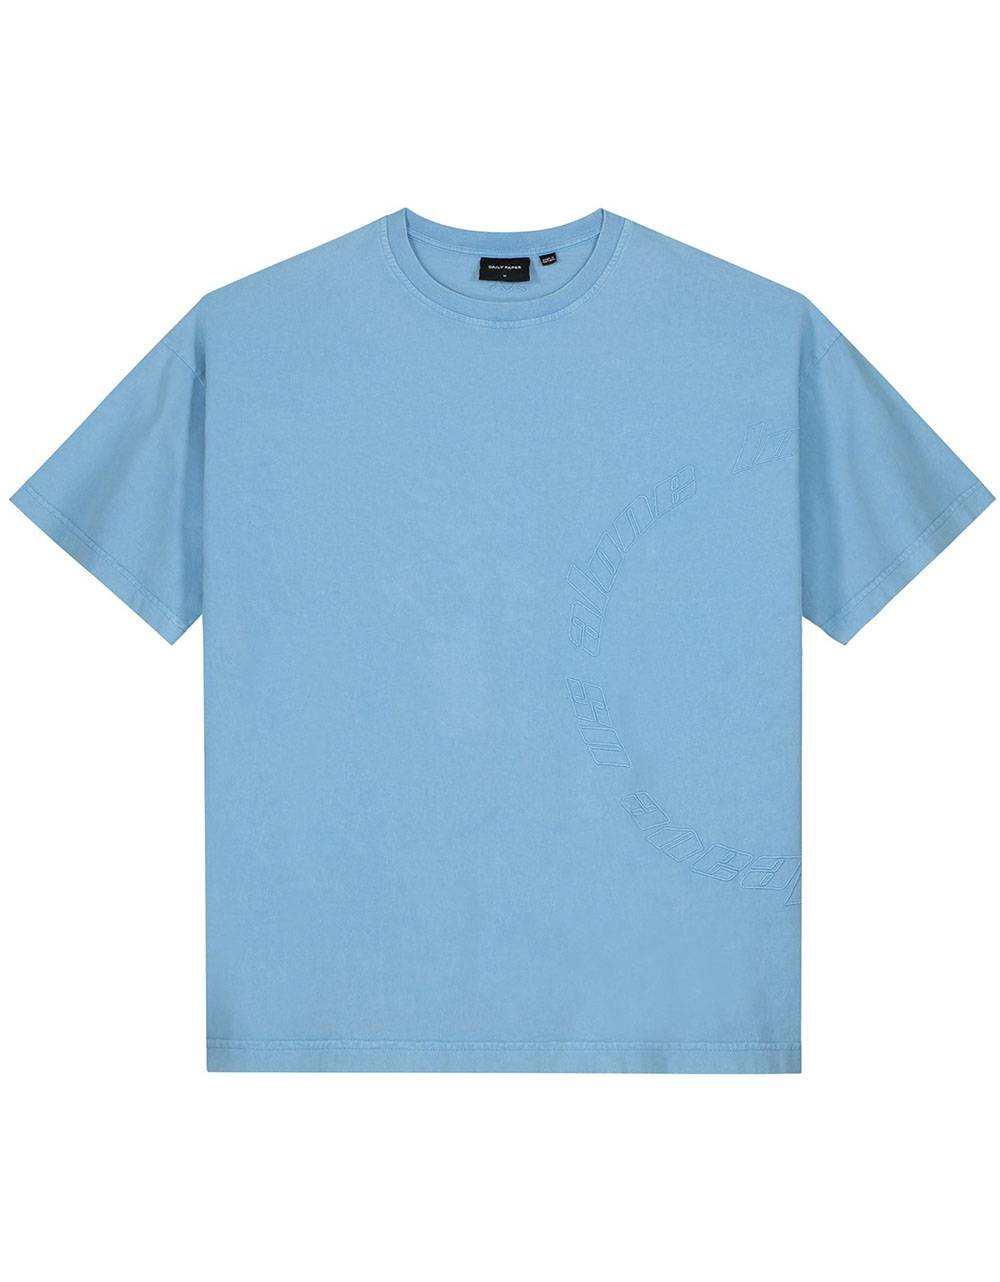 Daily Paper Kenspla tee - swedish blue DAILY PAPER T-shirt 69,67€